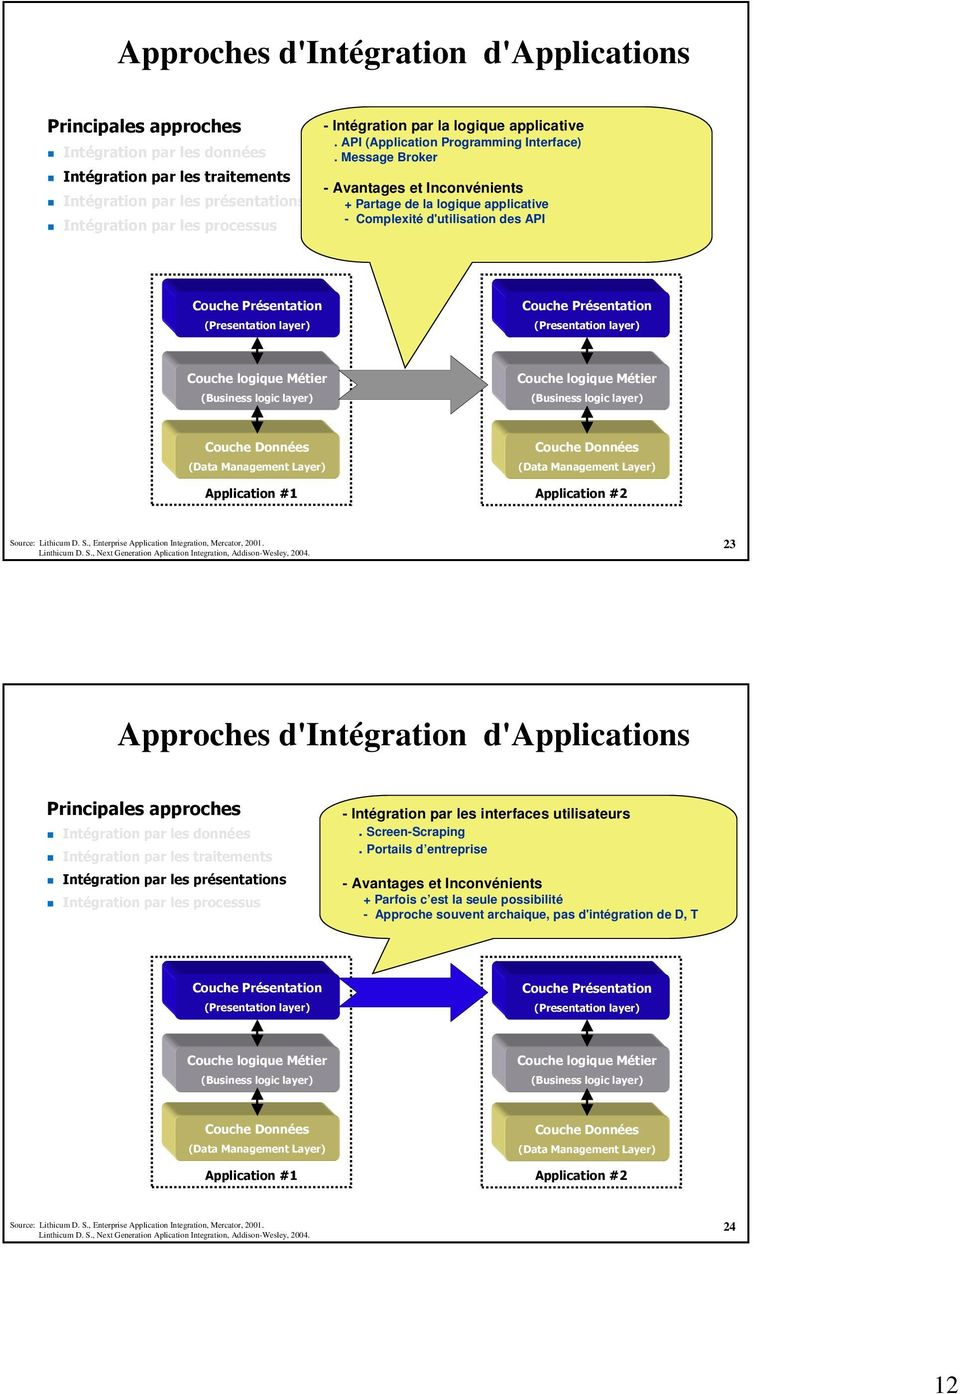 Linthicum D. S., Next Generation Aplication Integration, Addison-Wesley, 2004. 23 Approches d'intégration d'applications - Intégration par les interfaces utilisateurs. Screen-Scraping.